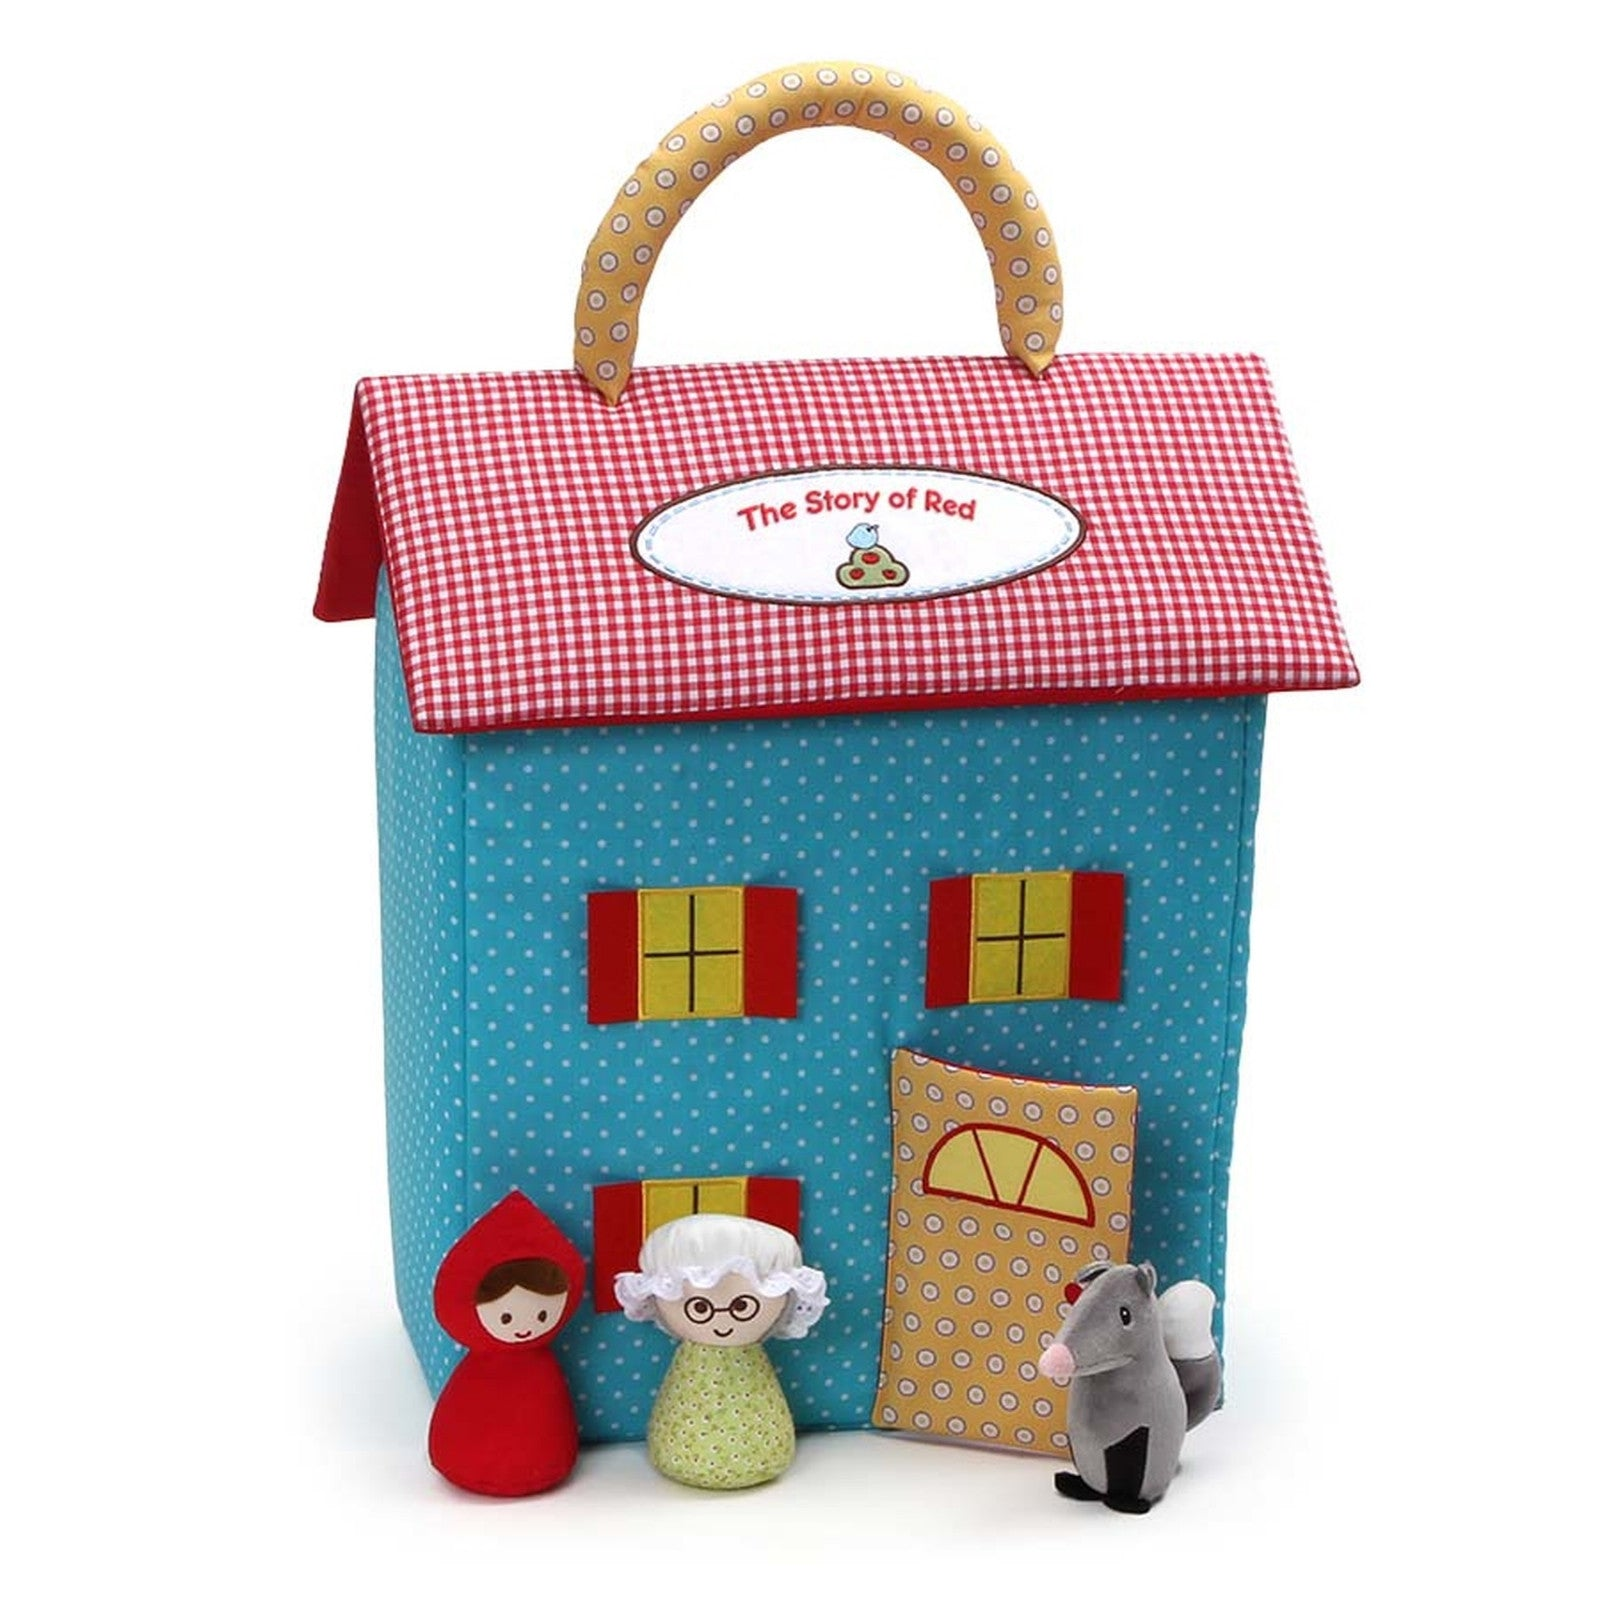 Gund - The Story of Red Dollhouse